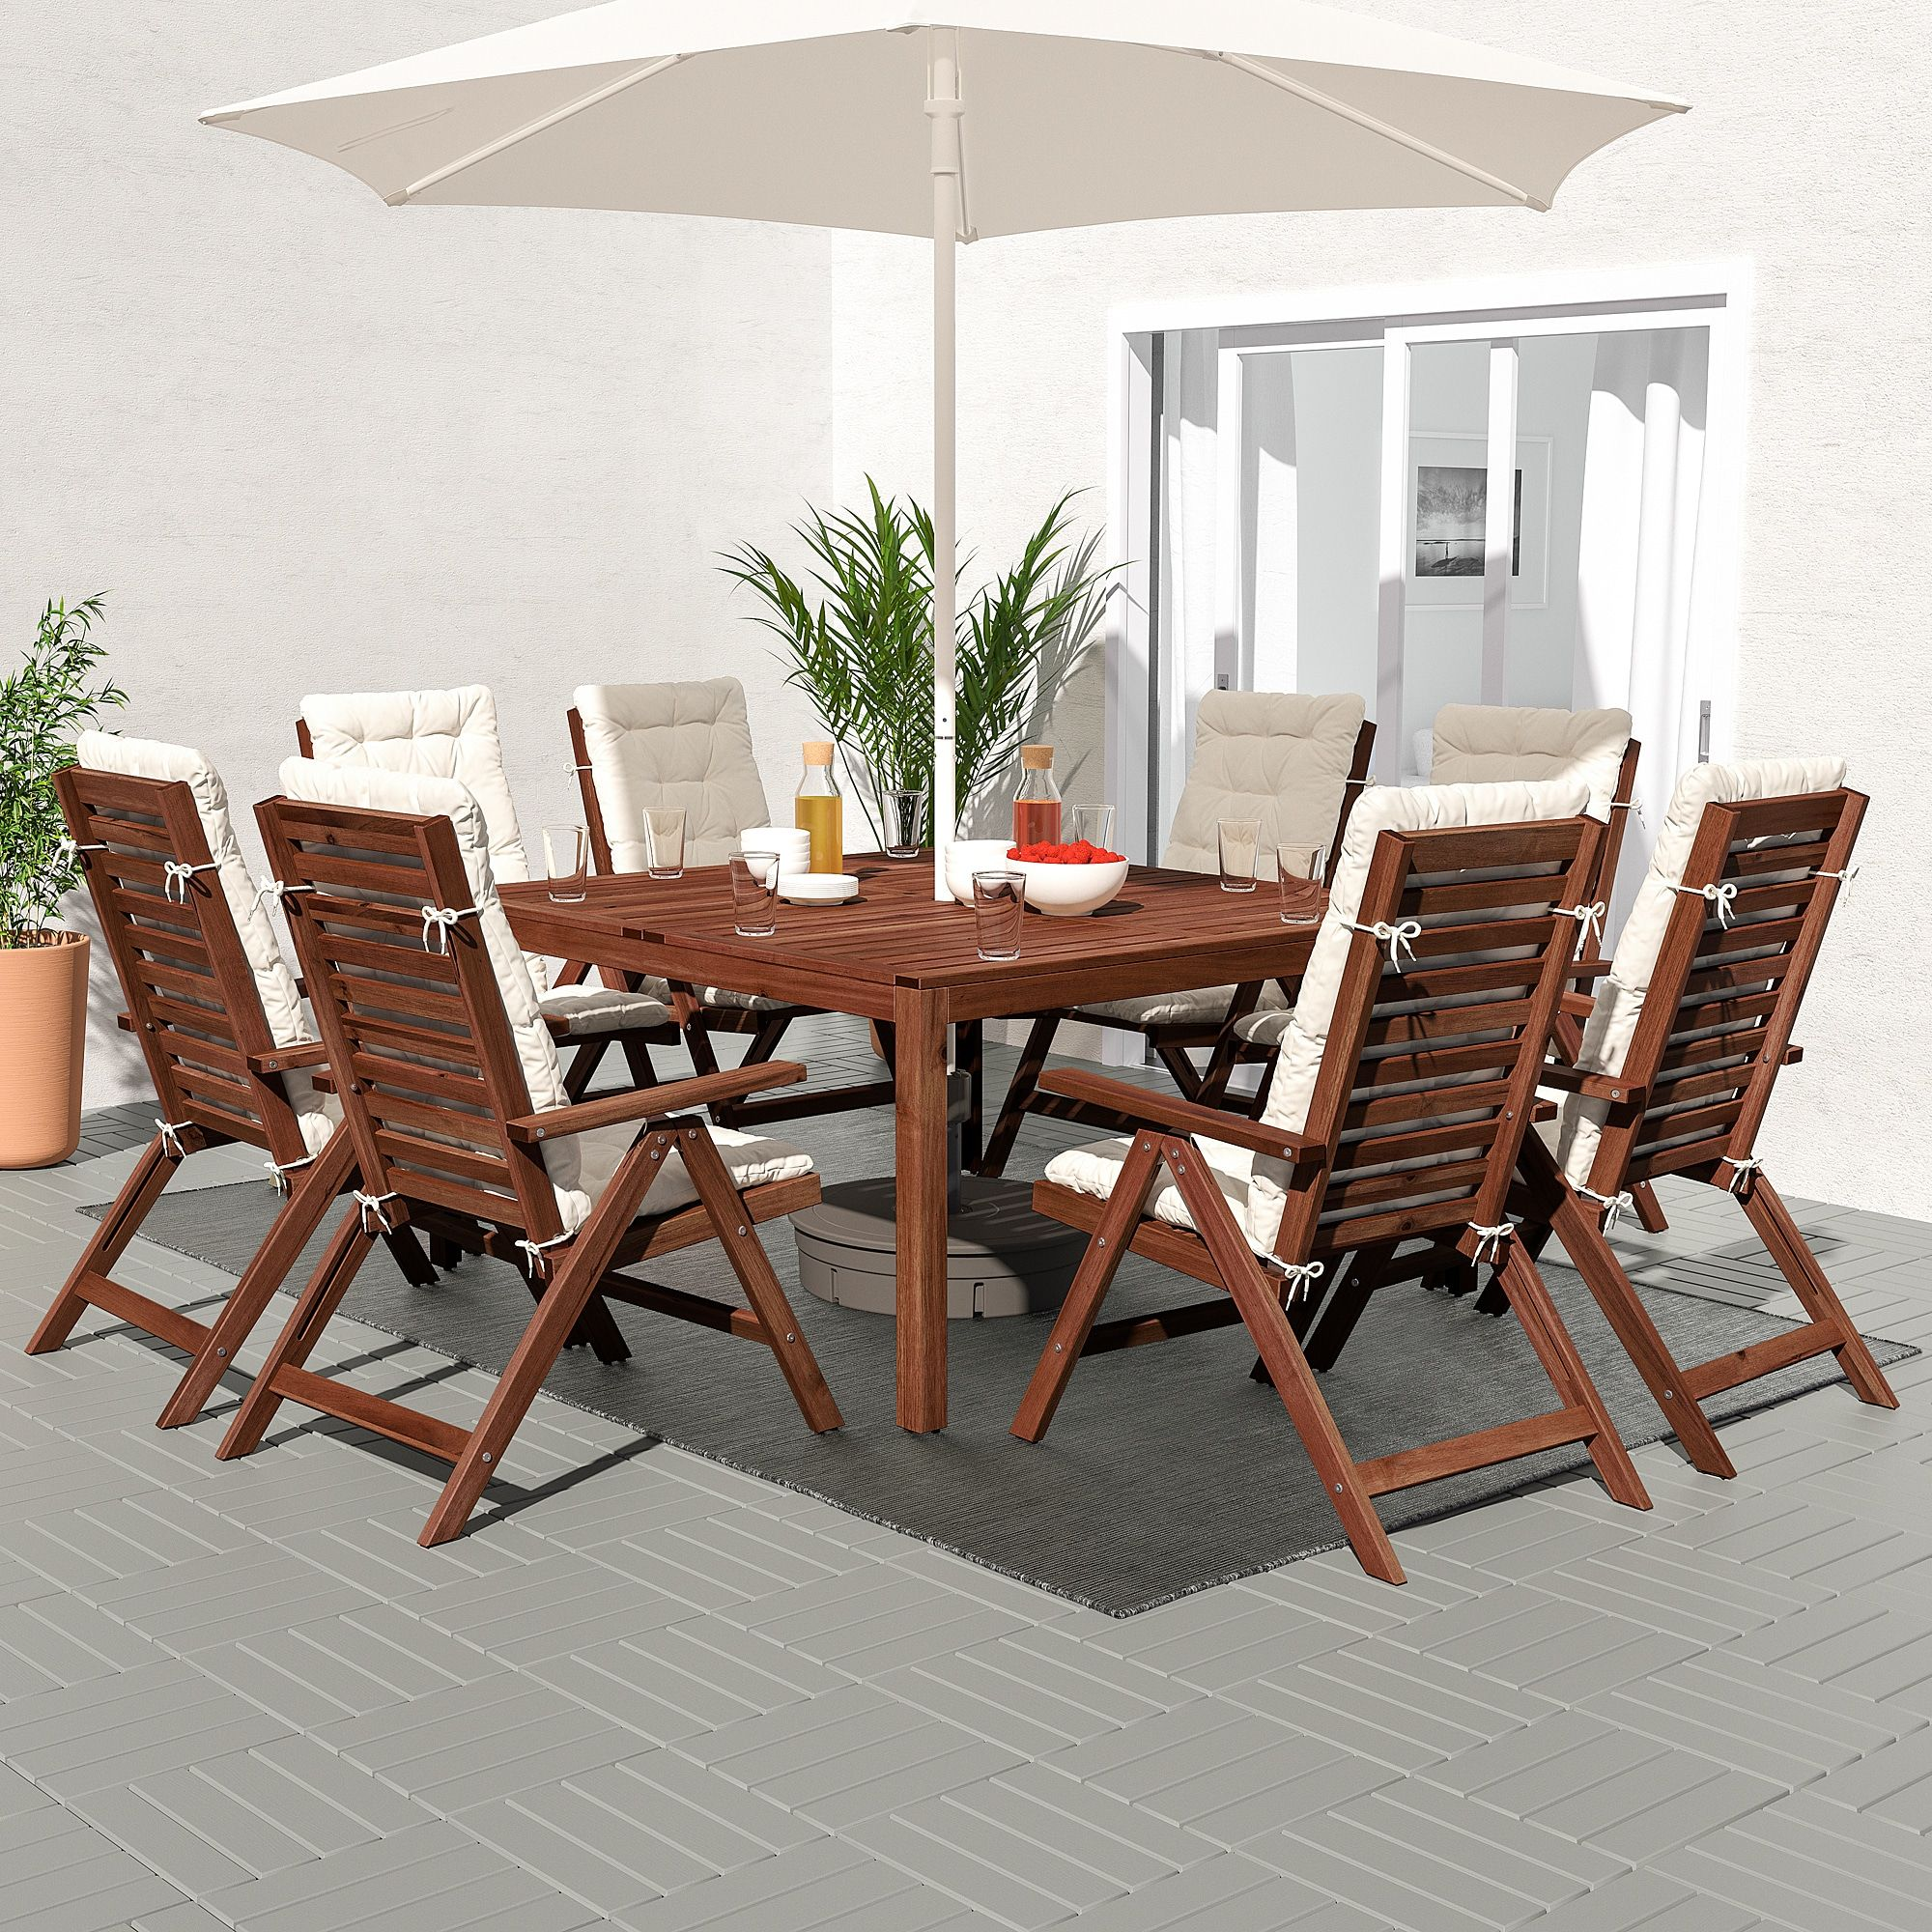 Superb Applaro Table 8 Reclining Chairs Outdoor Brown Stained Machost Co Dining Chair Design Ideas Machostcouk